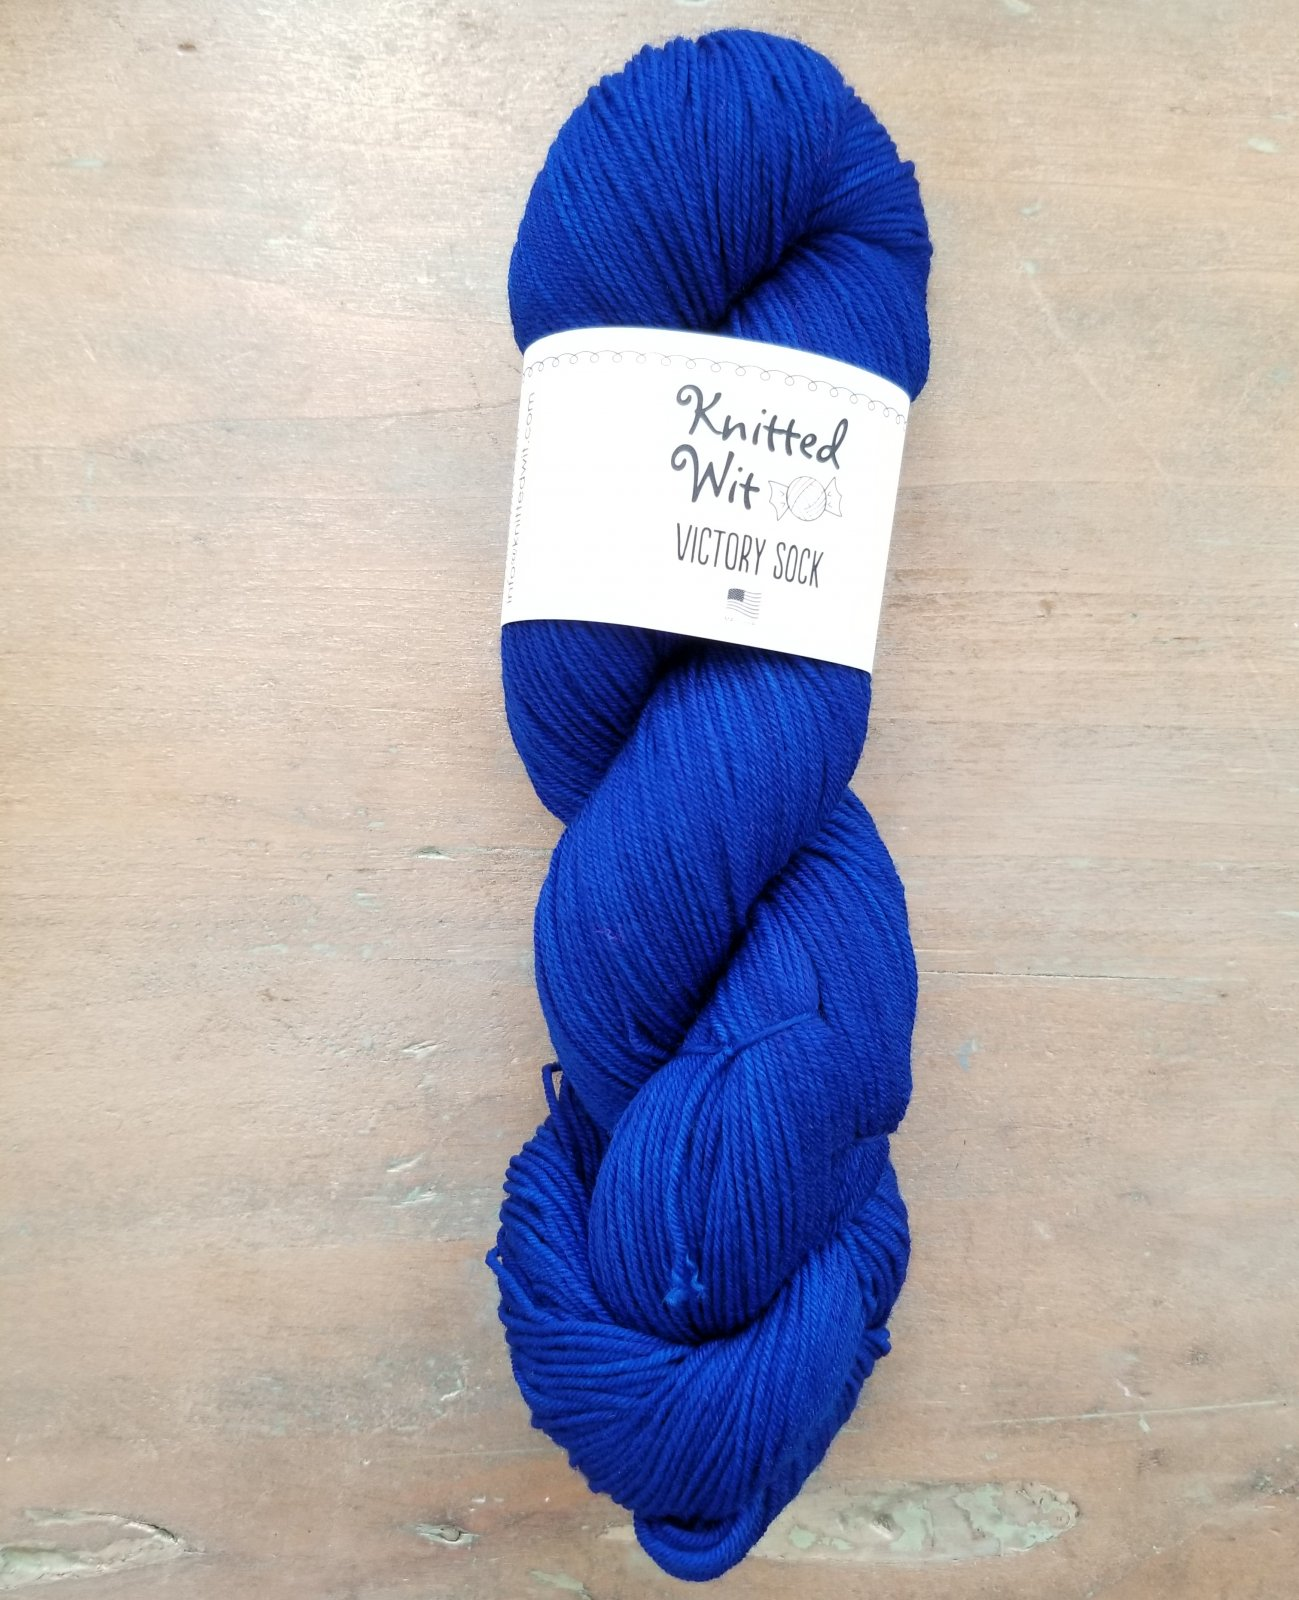 Blue Victory Sock by Knitted Wit